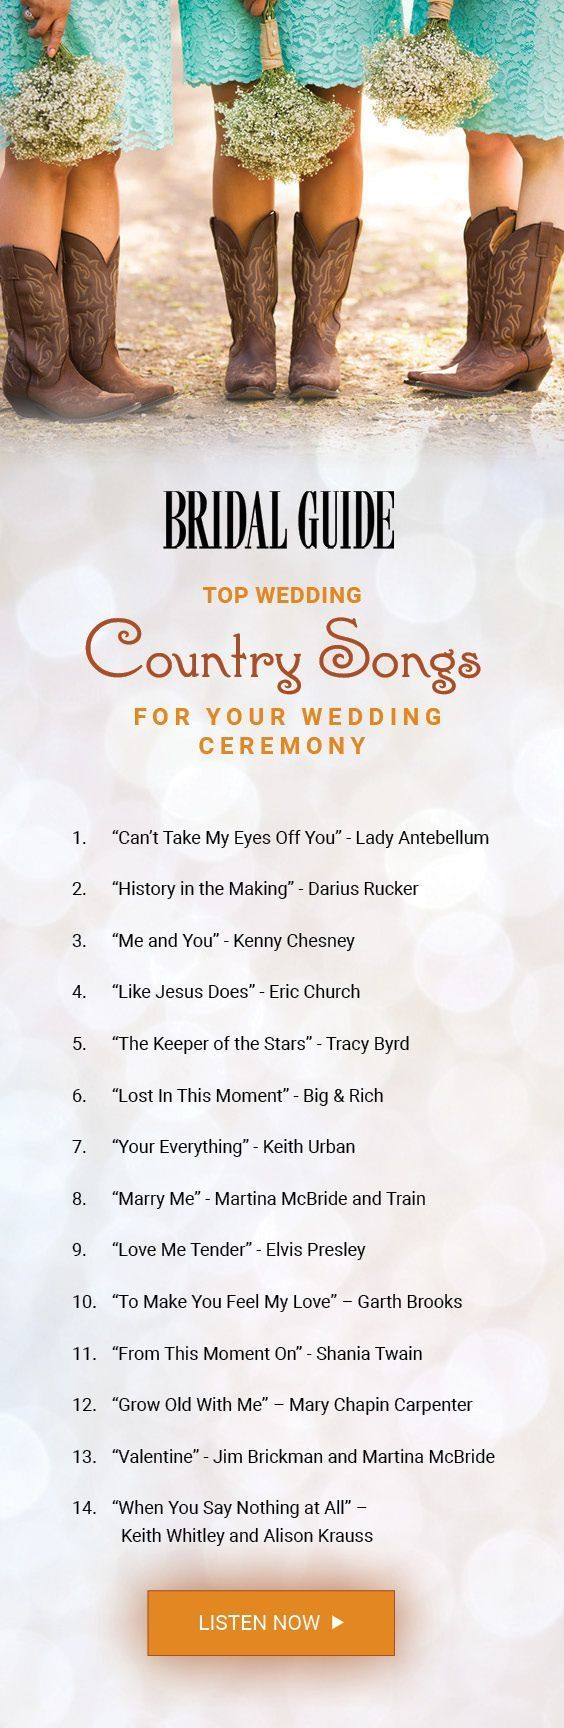 Top Wedding Country Songs For Your Ceremony